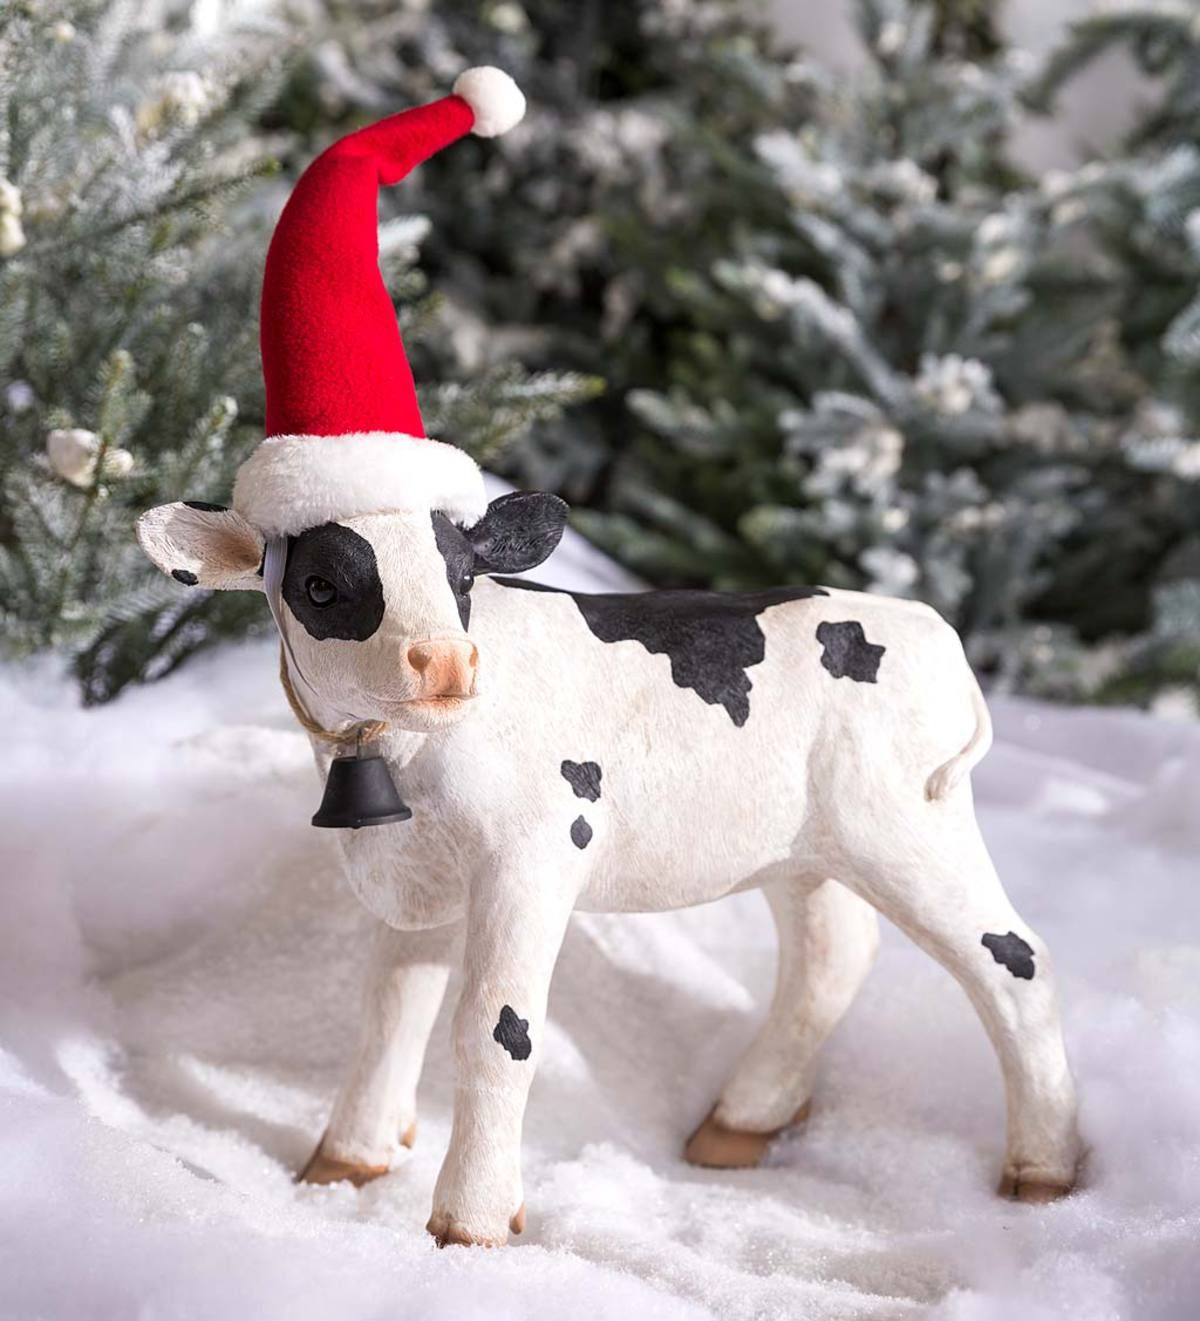 Mini Holiday Cow Garden Accent Eligible For Promotions Collections Outdoor Holiday Decor Decorating With Christmas Lights Christmas Reindeer Decorations